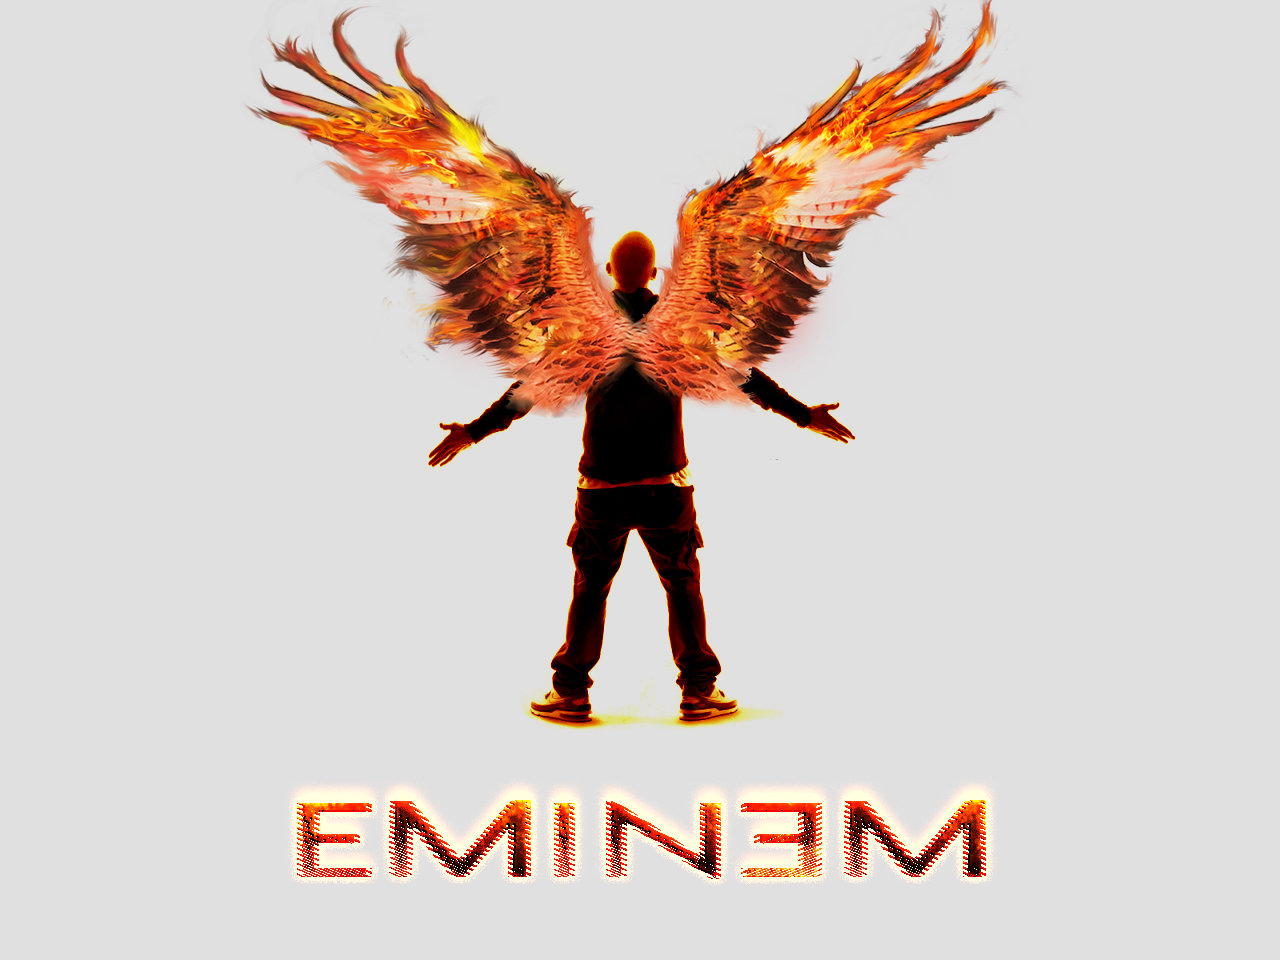 Download hd 1280x960 Eminem computer background ID:452217 for free